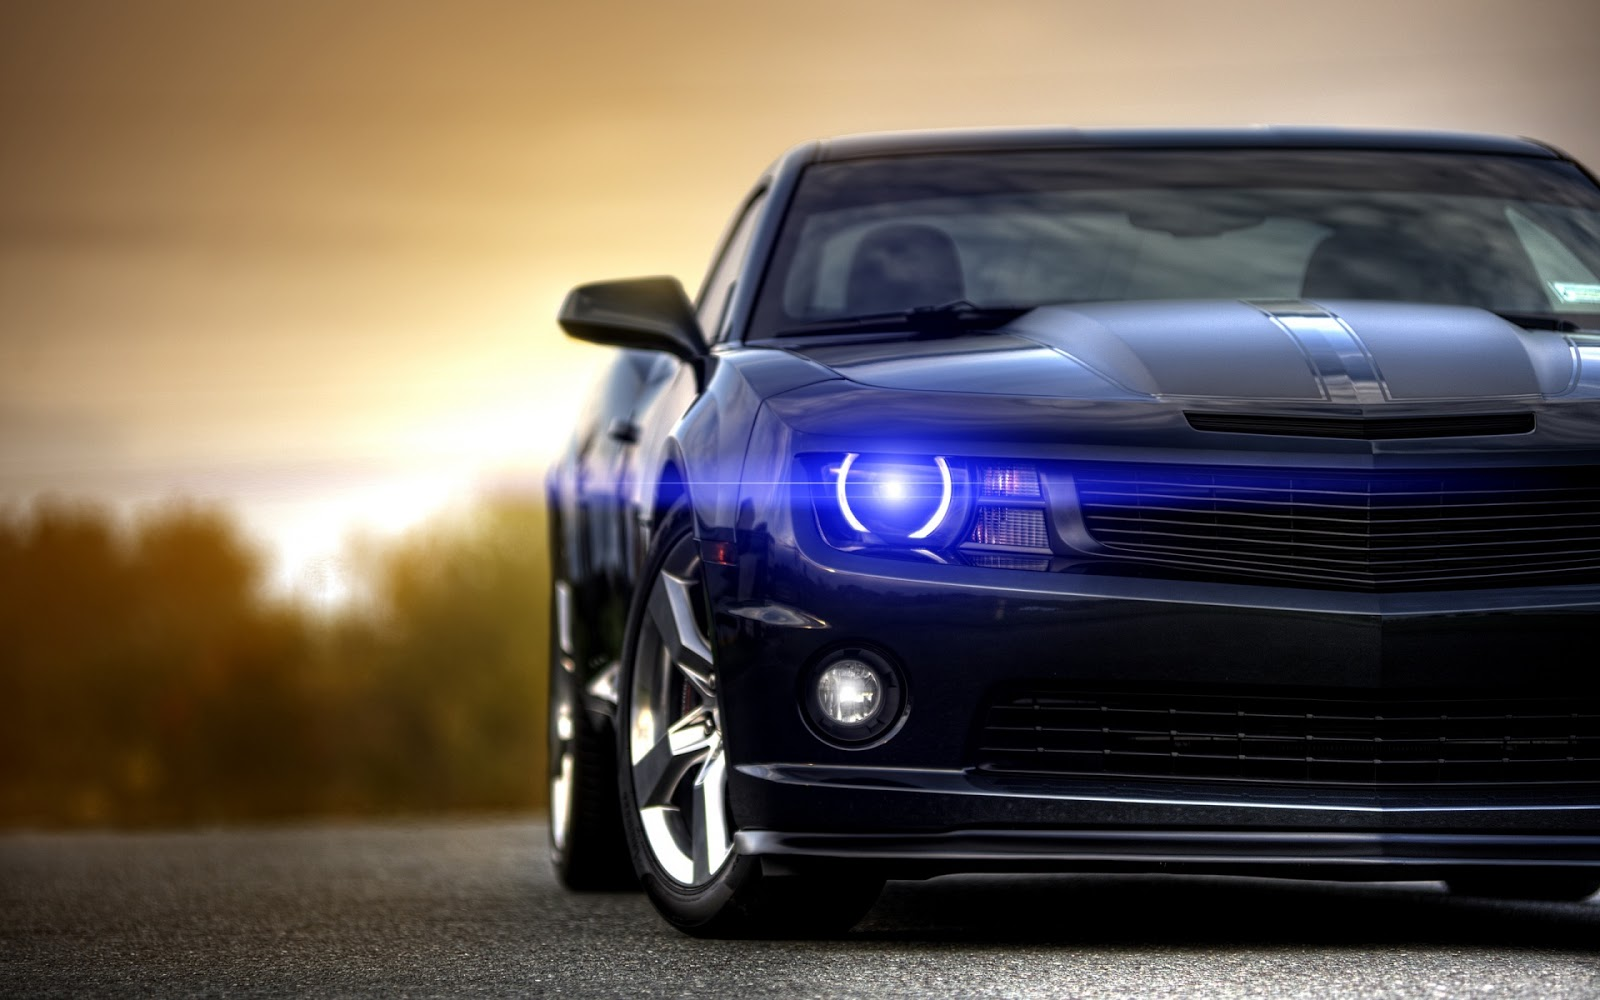 Full hd photography wallpapers download 1080p for pc cars